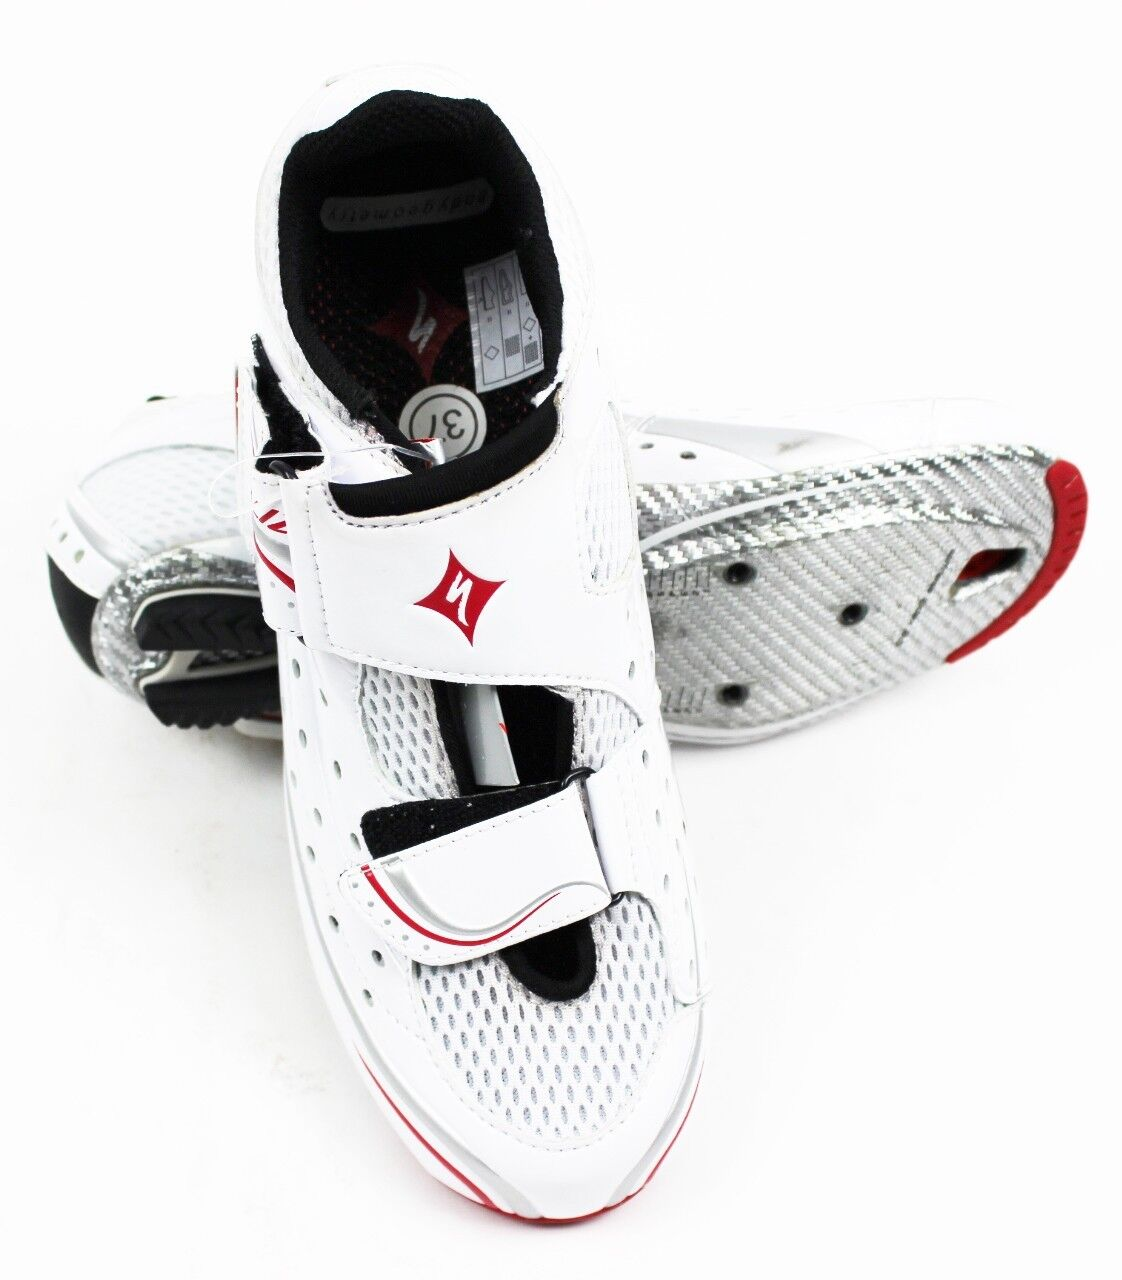 SPECIALIZED Trivent Expert Woman's Road Cycling shoes 42 EU   10.5 US White Red